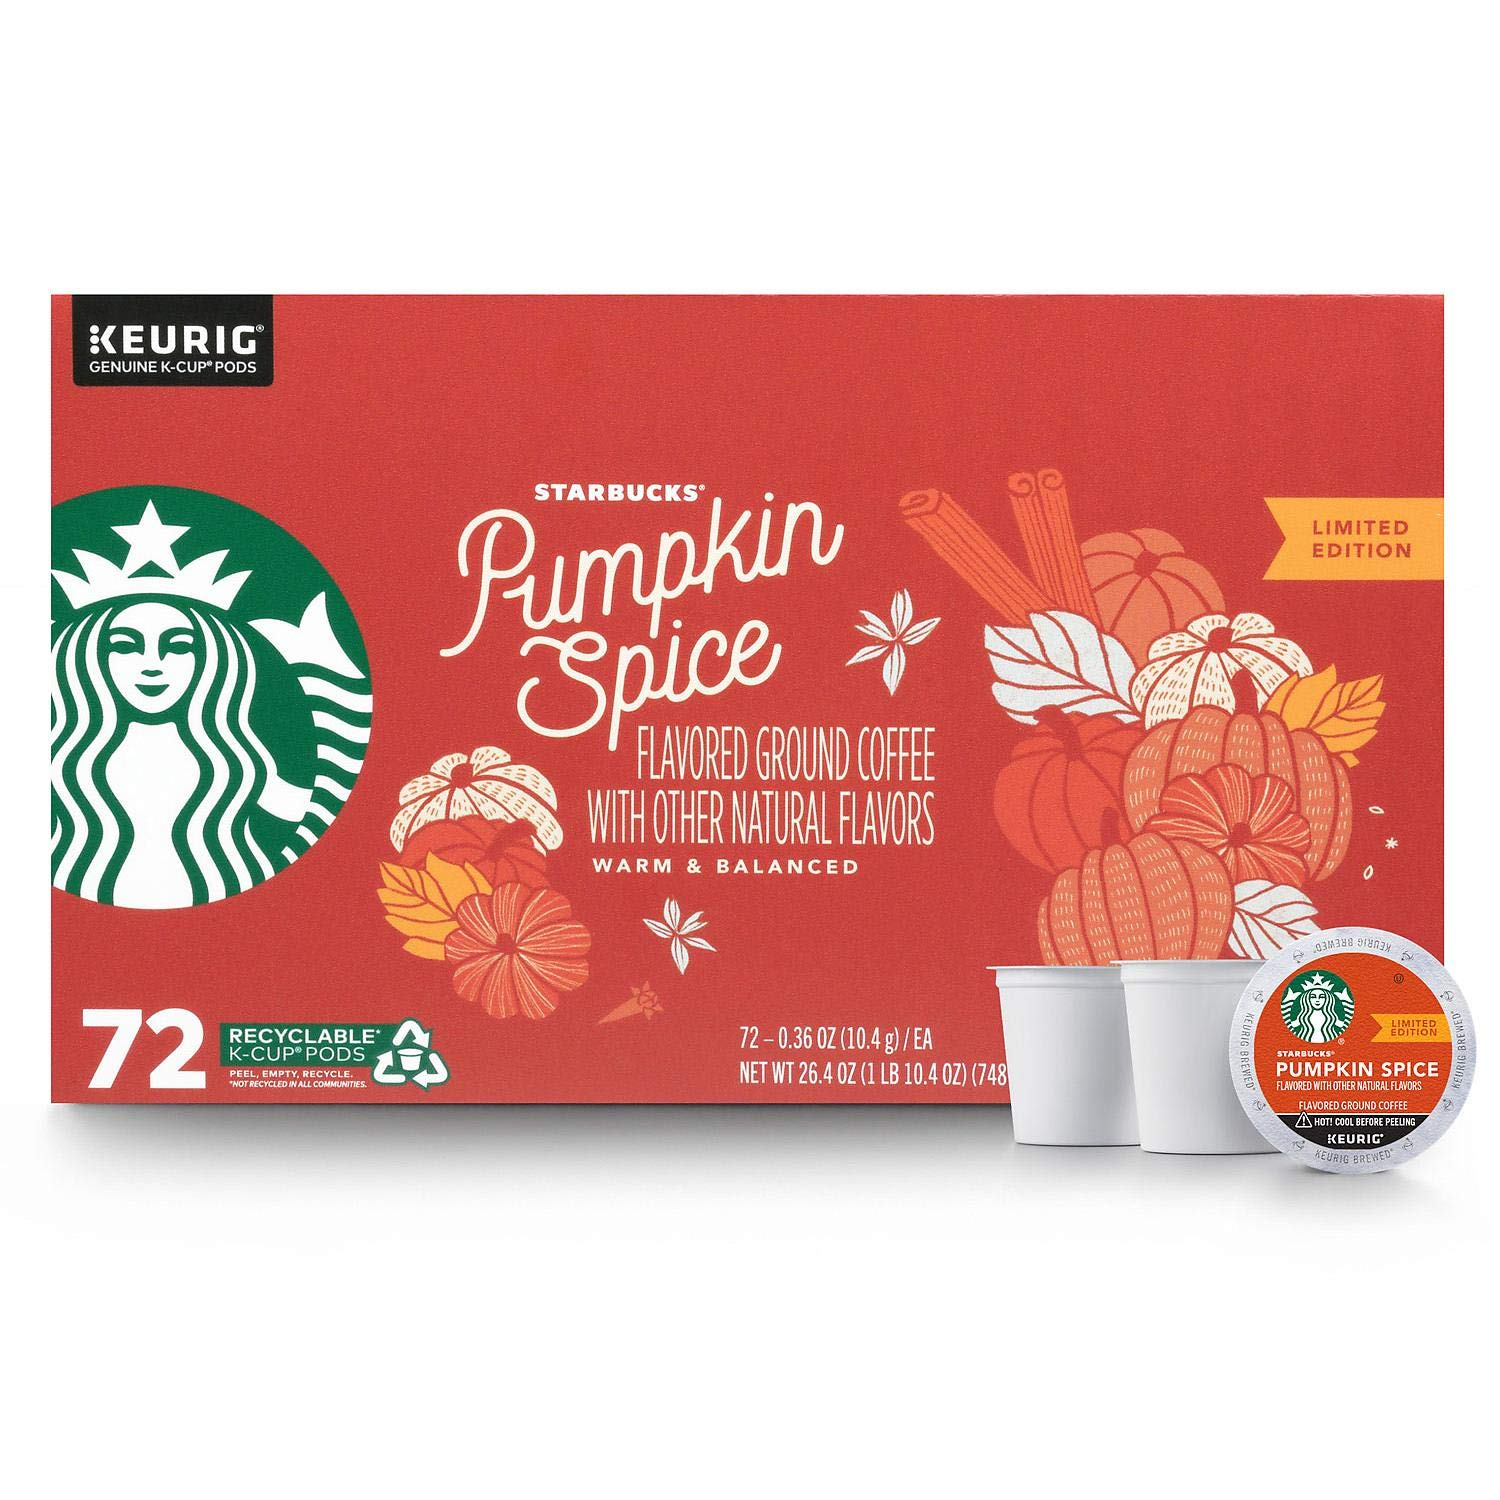 Starbucks Pumpkin Spice Flavored Coffee